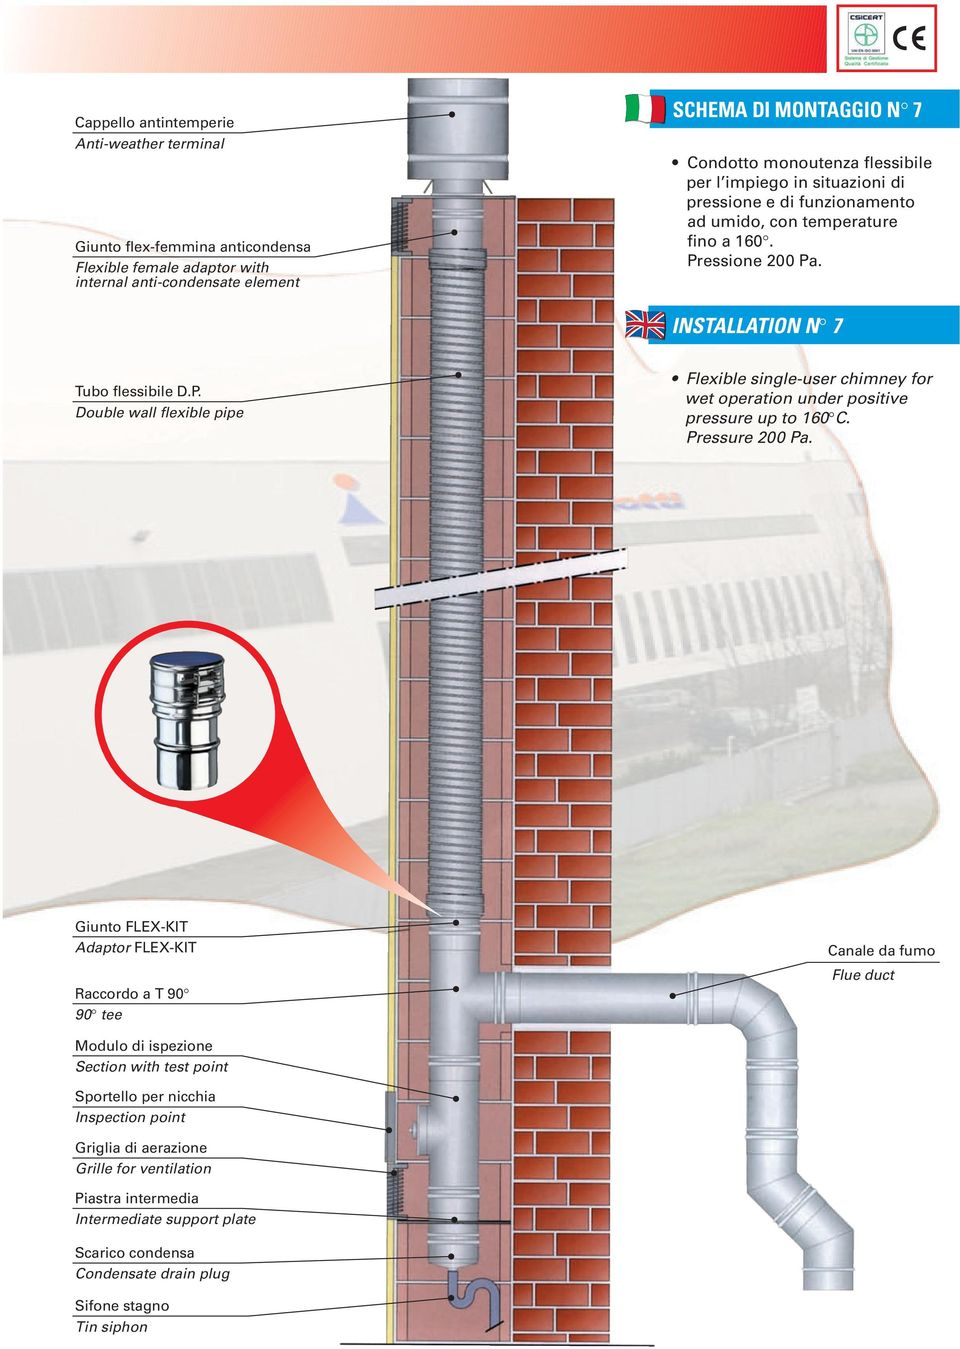 INSTALLATION N 7 Tubo flessibile D.P. Double wall flexible pipe Flexible single-user chimney for wet operation under positive pressure up to 160 C. Pressure 200 Pa.